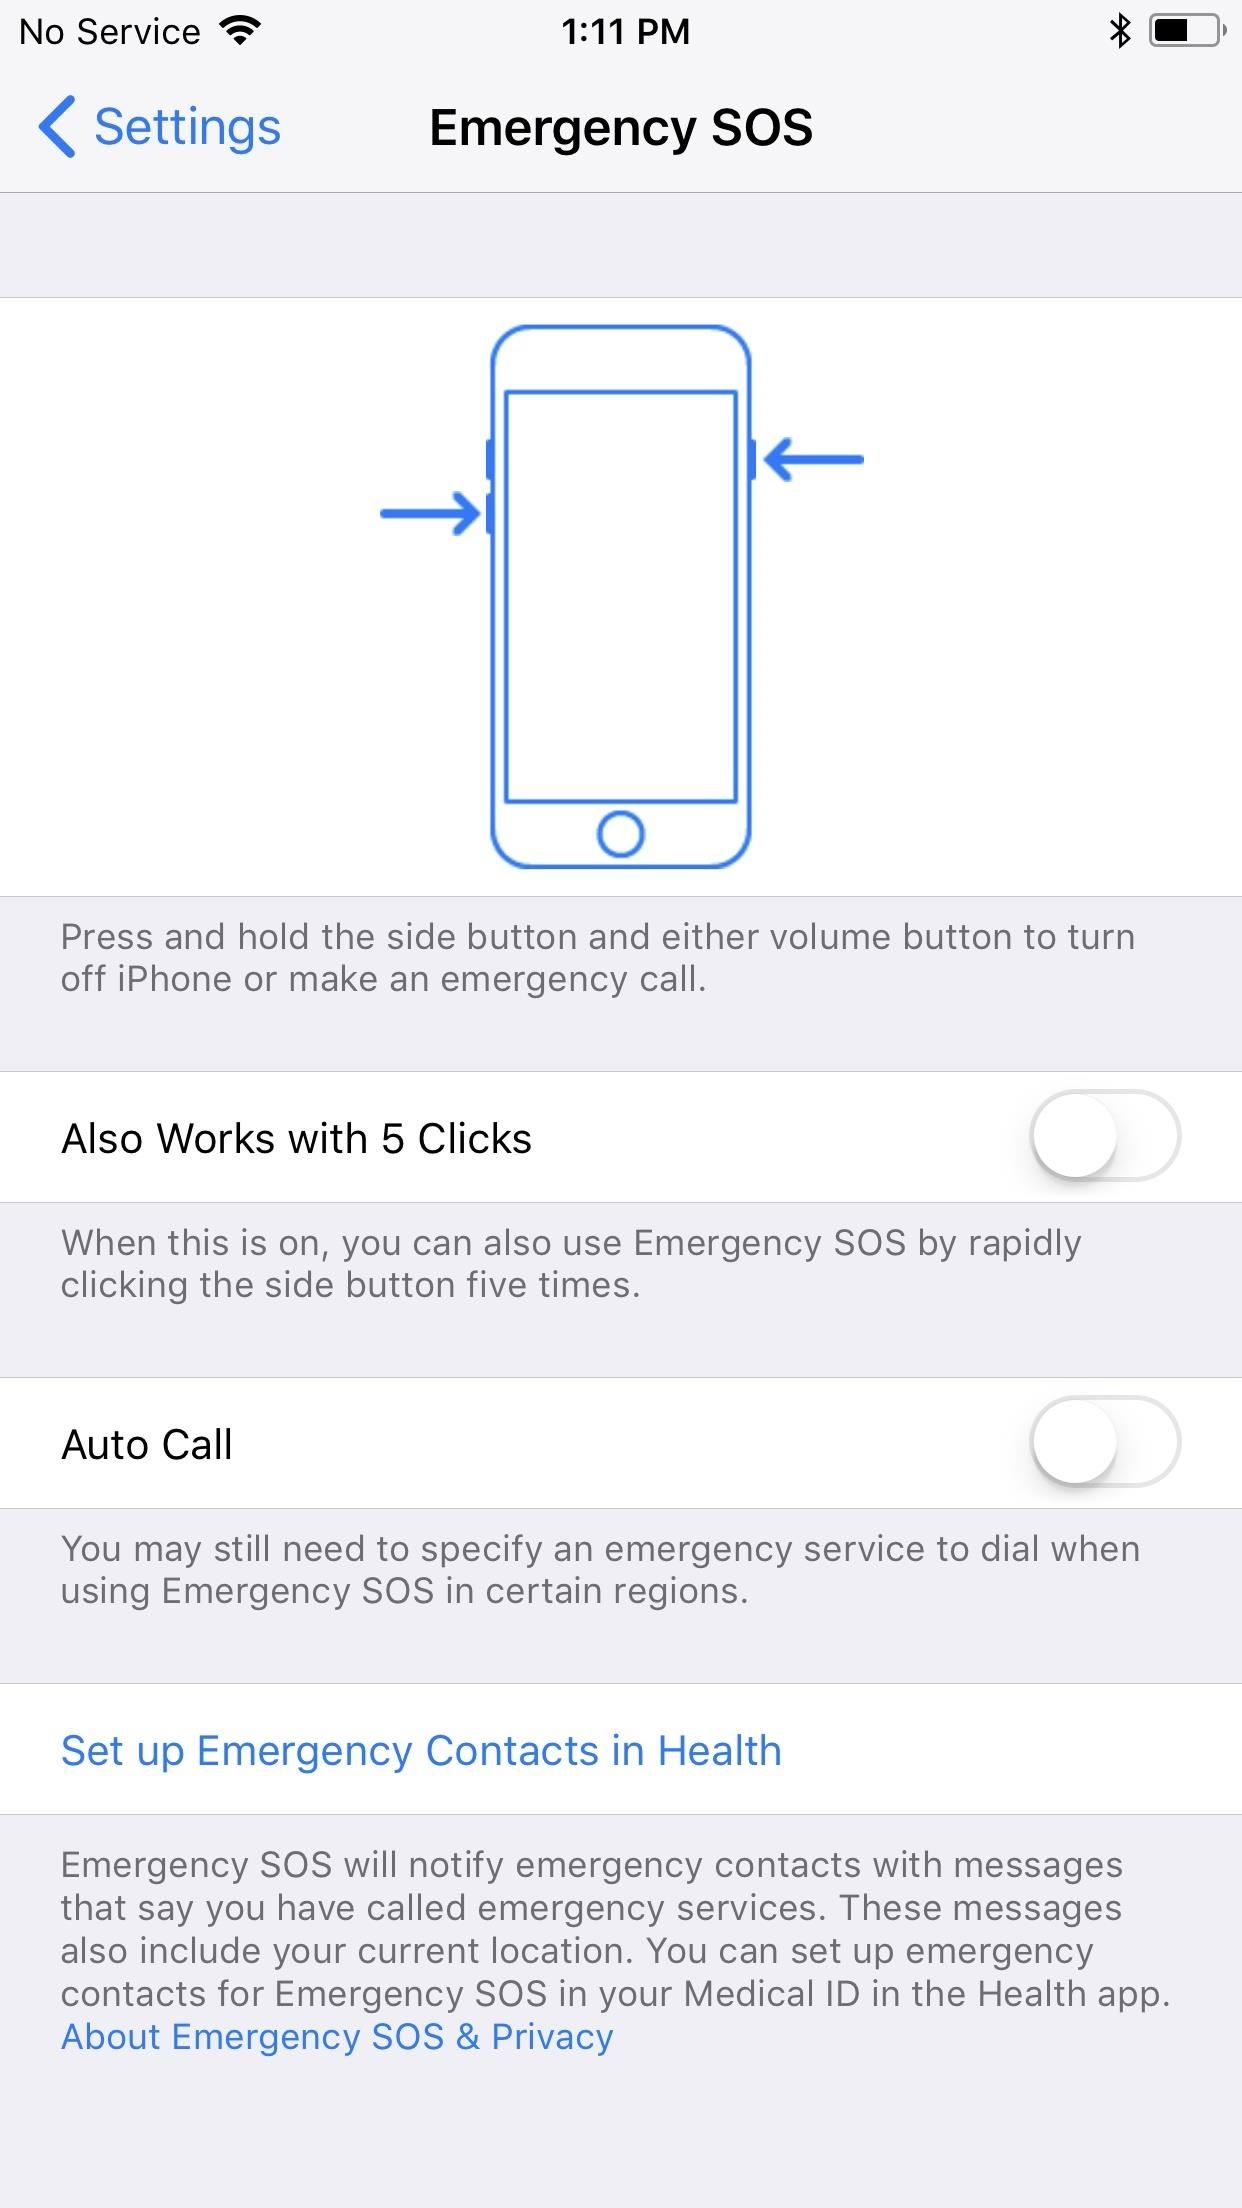 How to Use the Emergency SOS Shortcut on Your iPhone in iOS 11